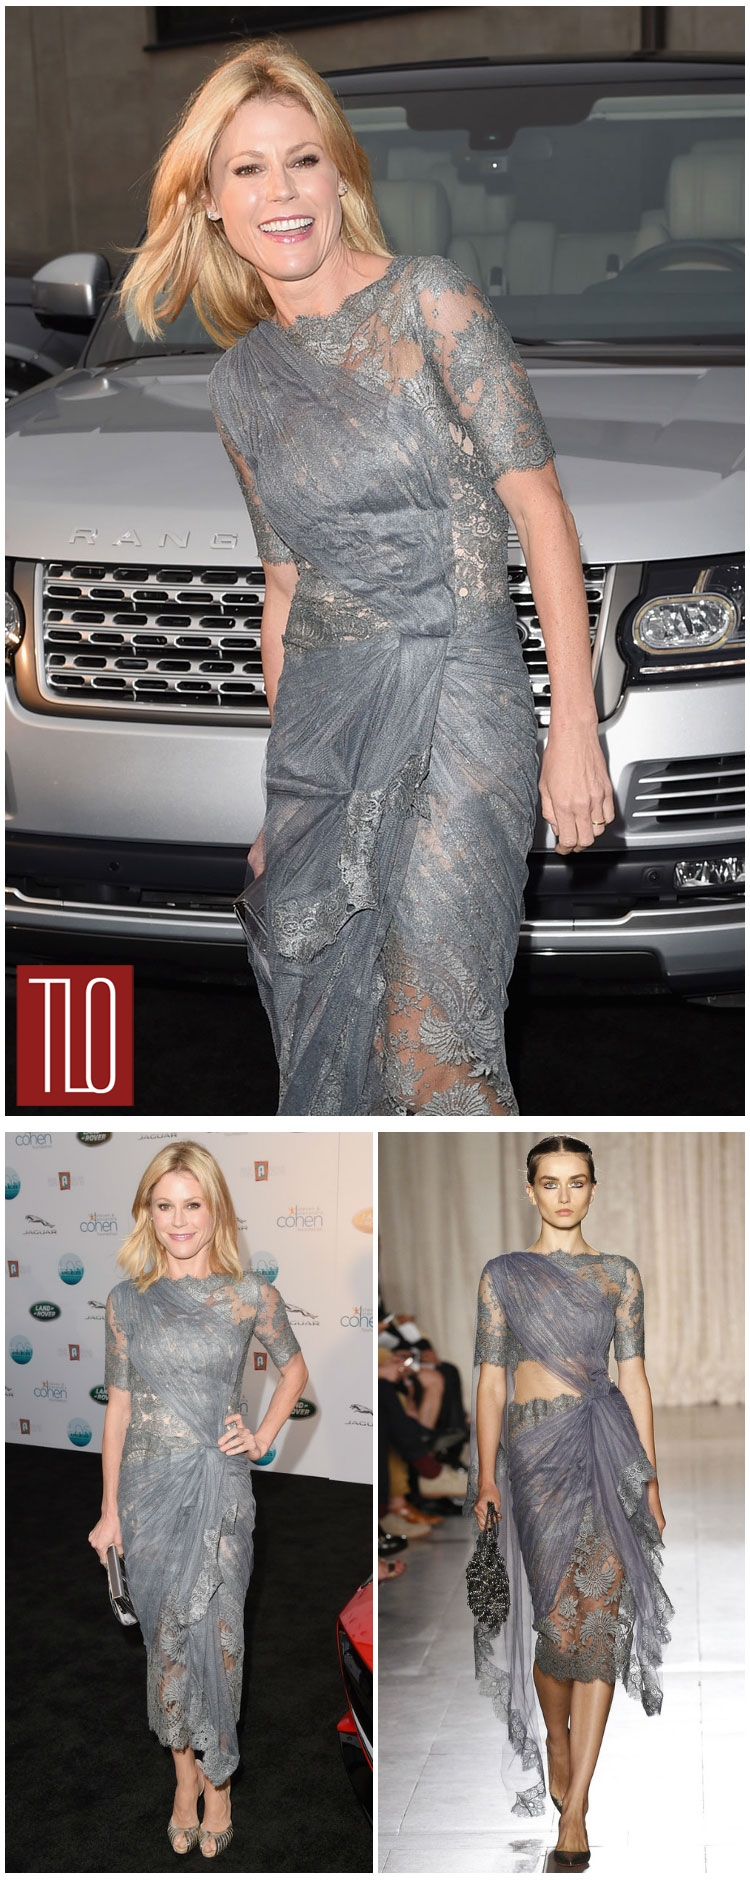 Julie-Bowen-Marchesa-LA-Modernism-Opening-Night-Tom-Lorenzo-Site-TLO (1)